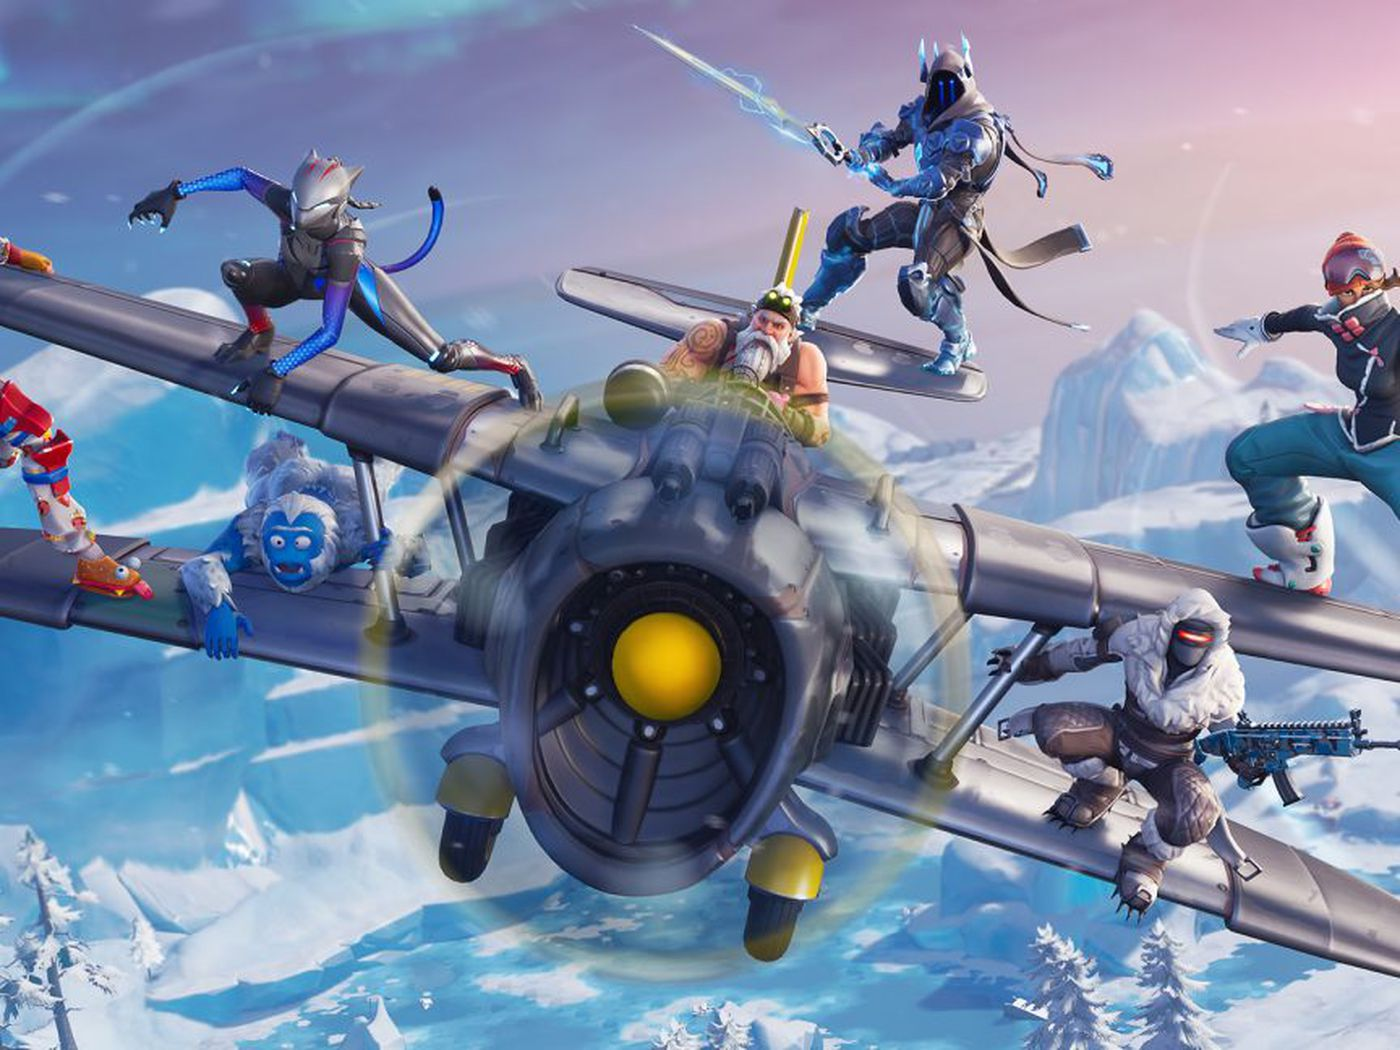 Fortnite Season 7 Arrives With Santa Planes And Lots Of Snow The